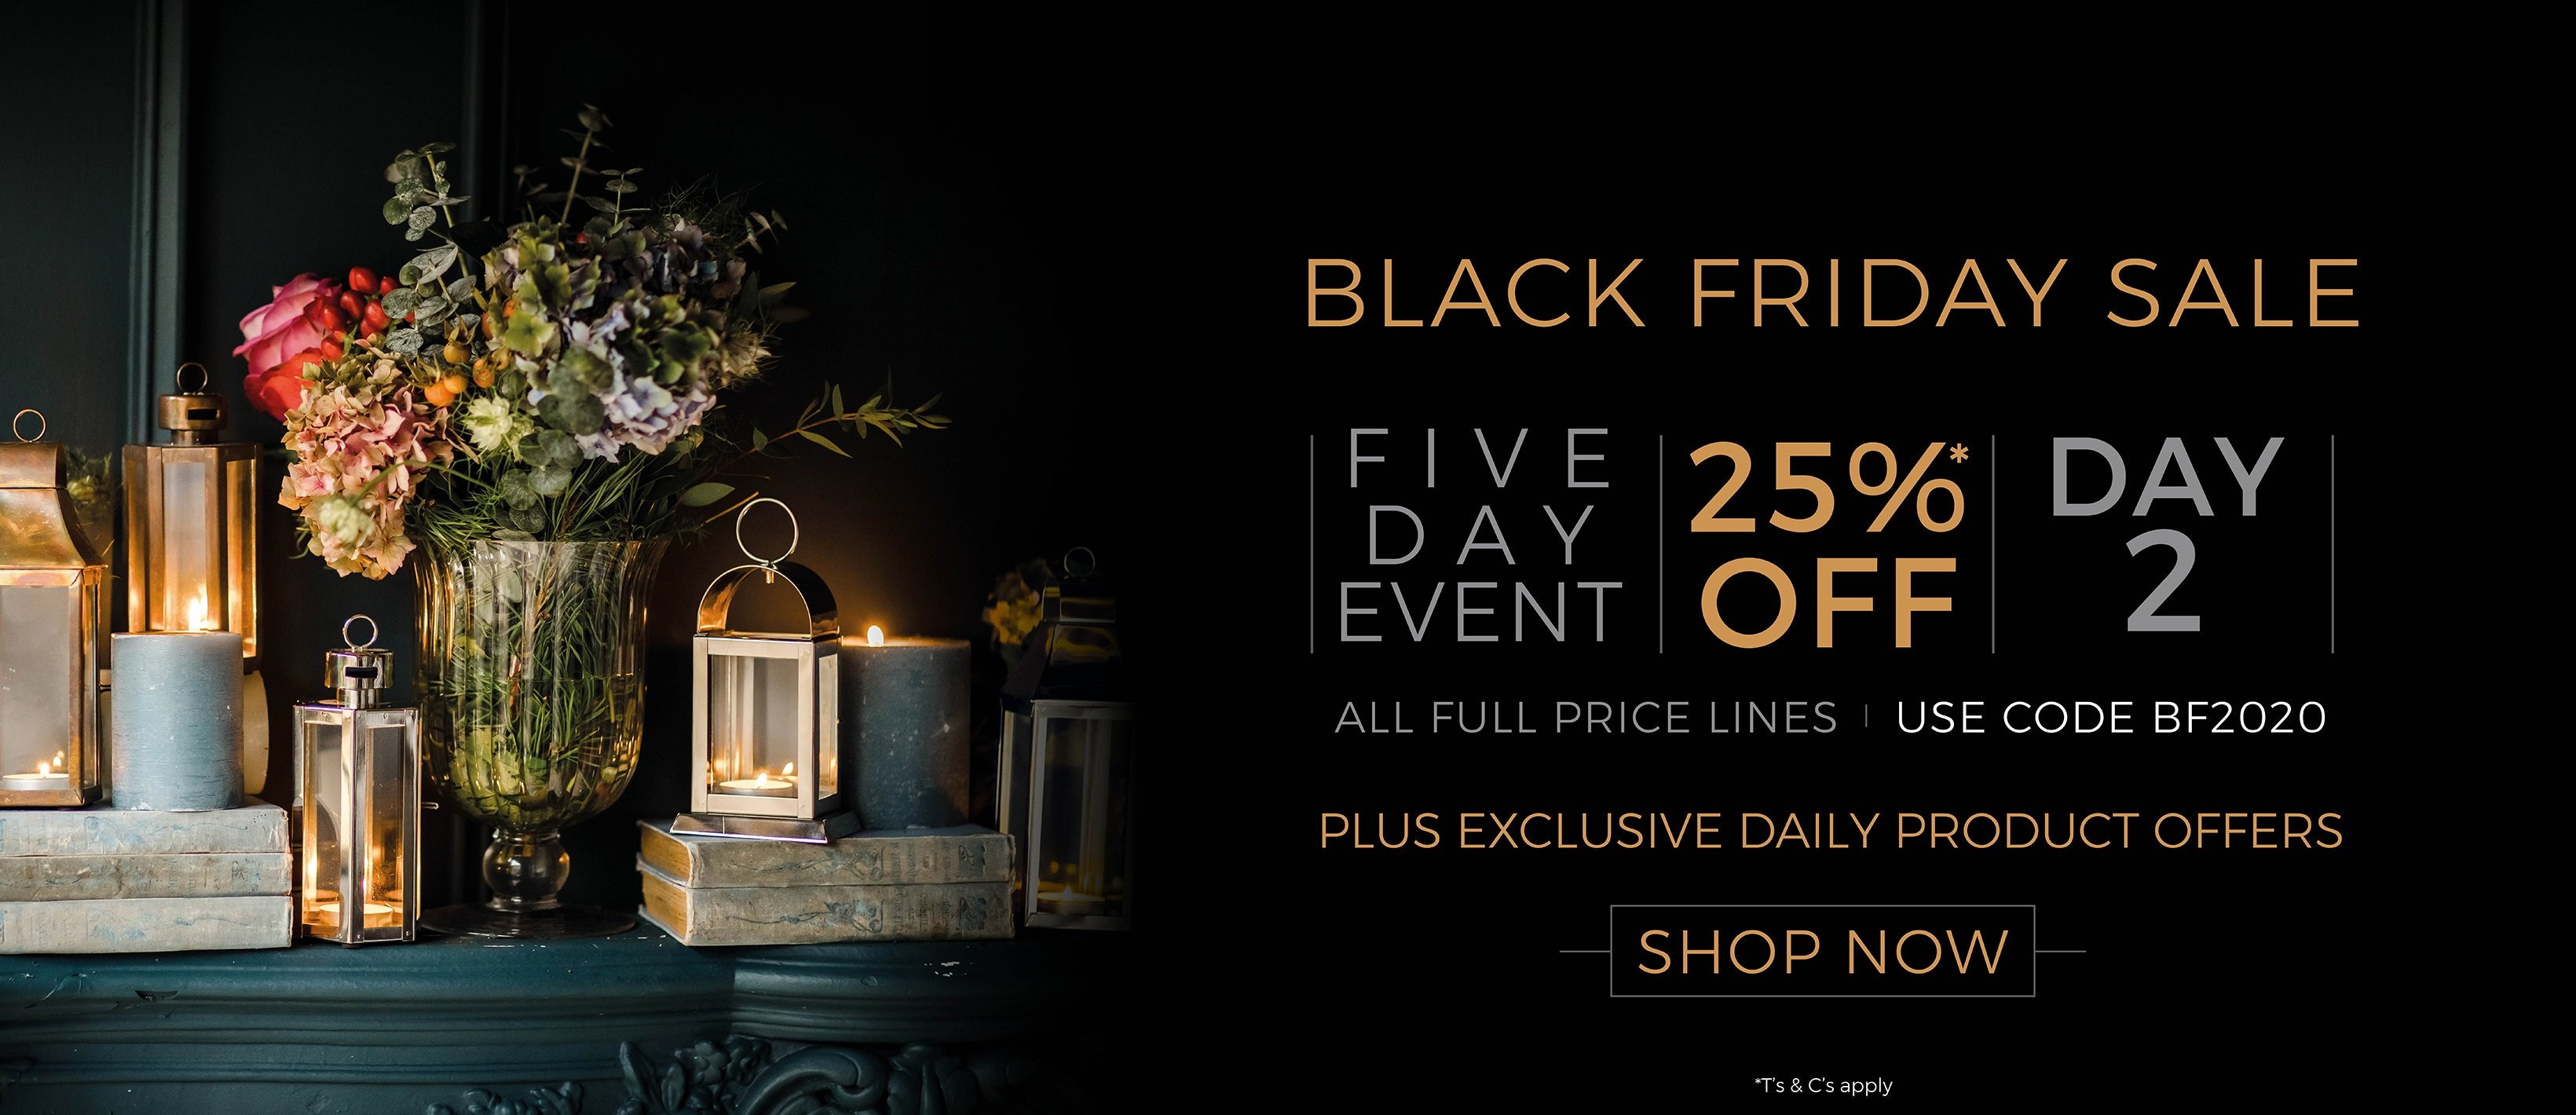 Black Friday Daily Offers